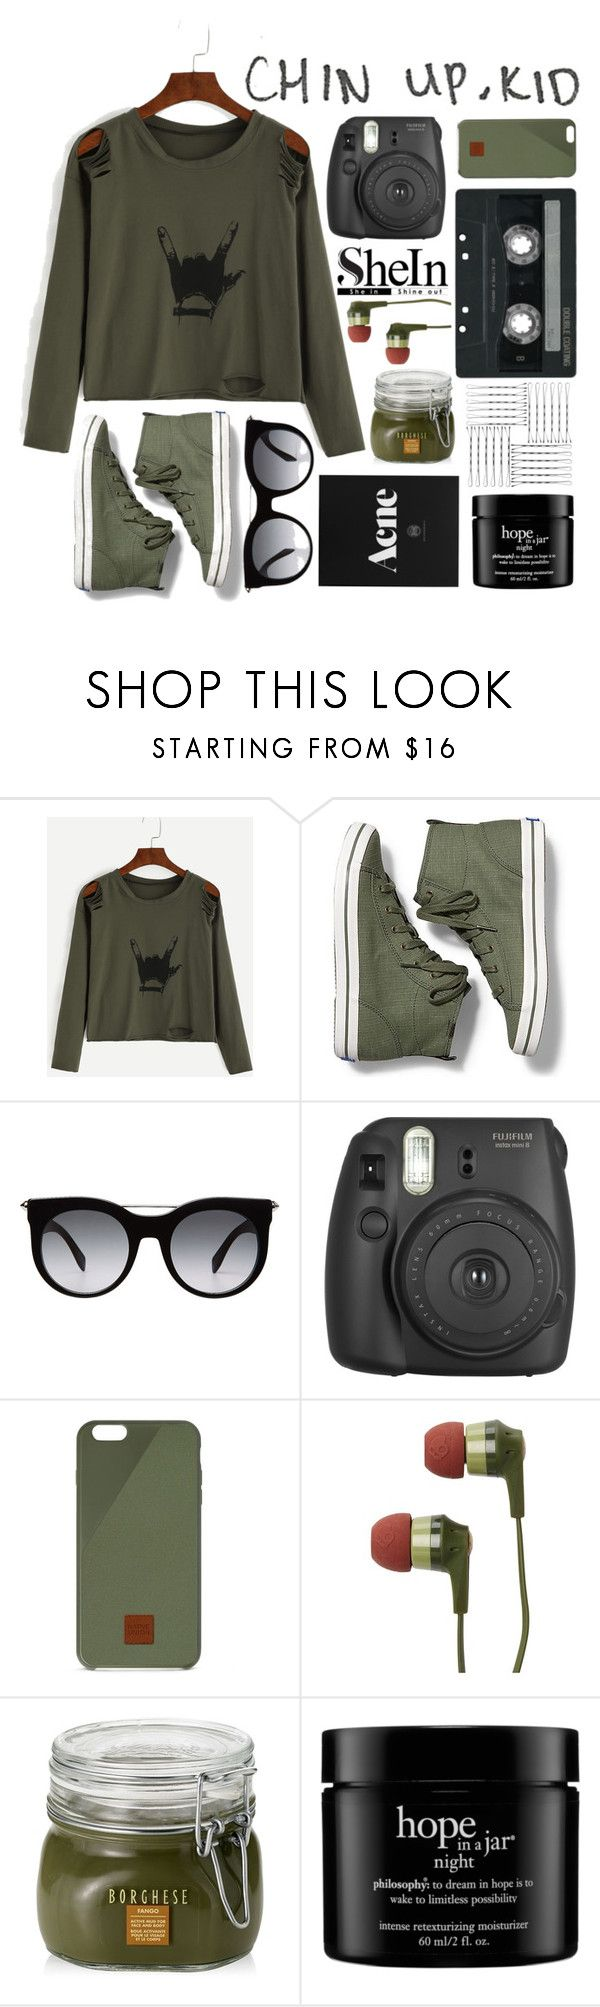 """""""Green Shein Gesture Print Shirt"""" by princessfo-eva ❤ liked on Polyvore featuring Keds, Alexander McQueen, Fujifilm, Native Union, CASSETTE, Skullcandy, Borghese and philosophy"""